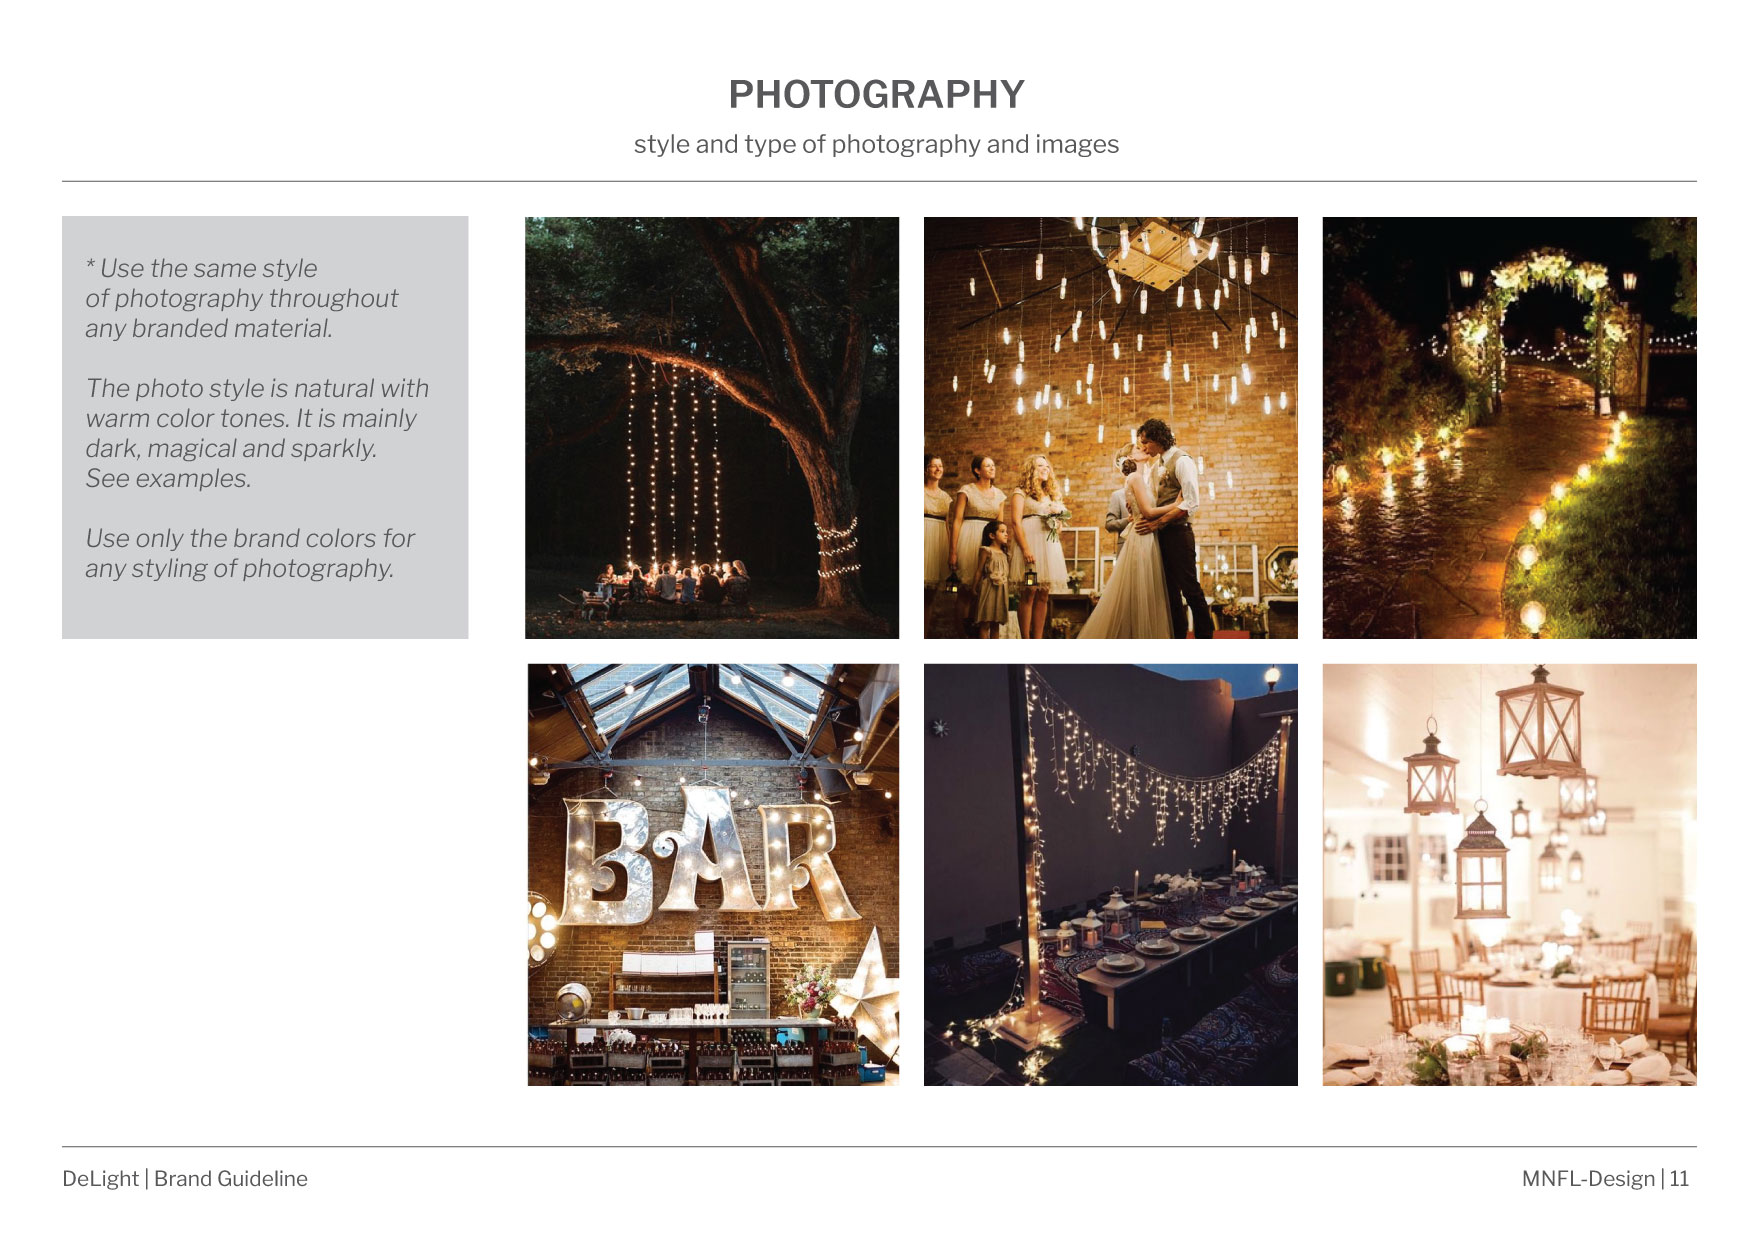 DeLight Brand Style Guide_photography.jpg